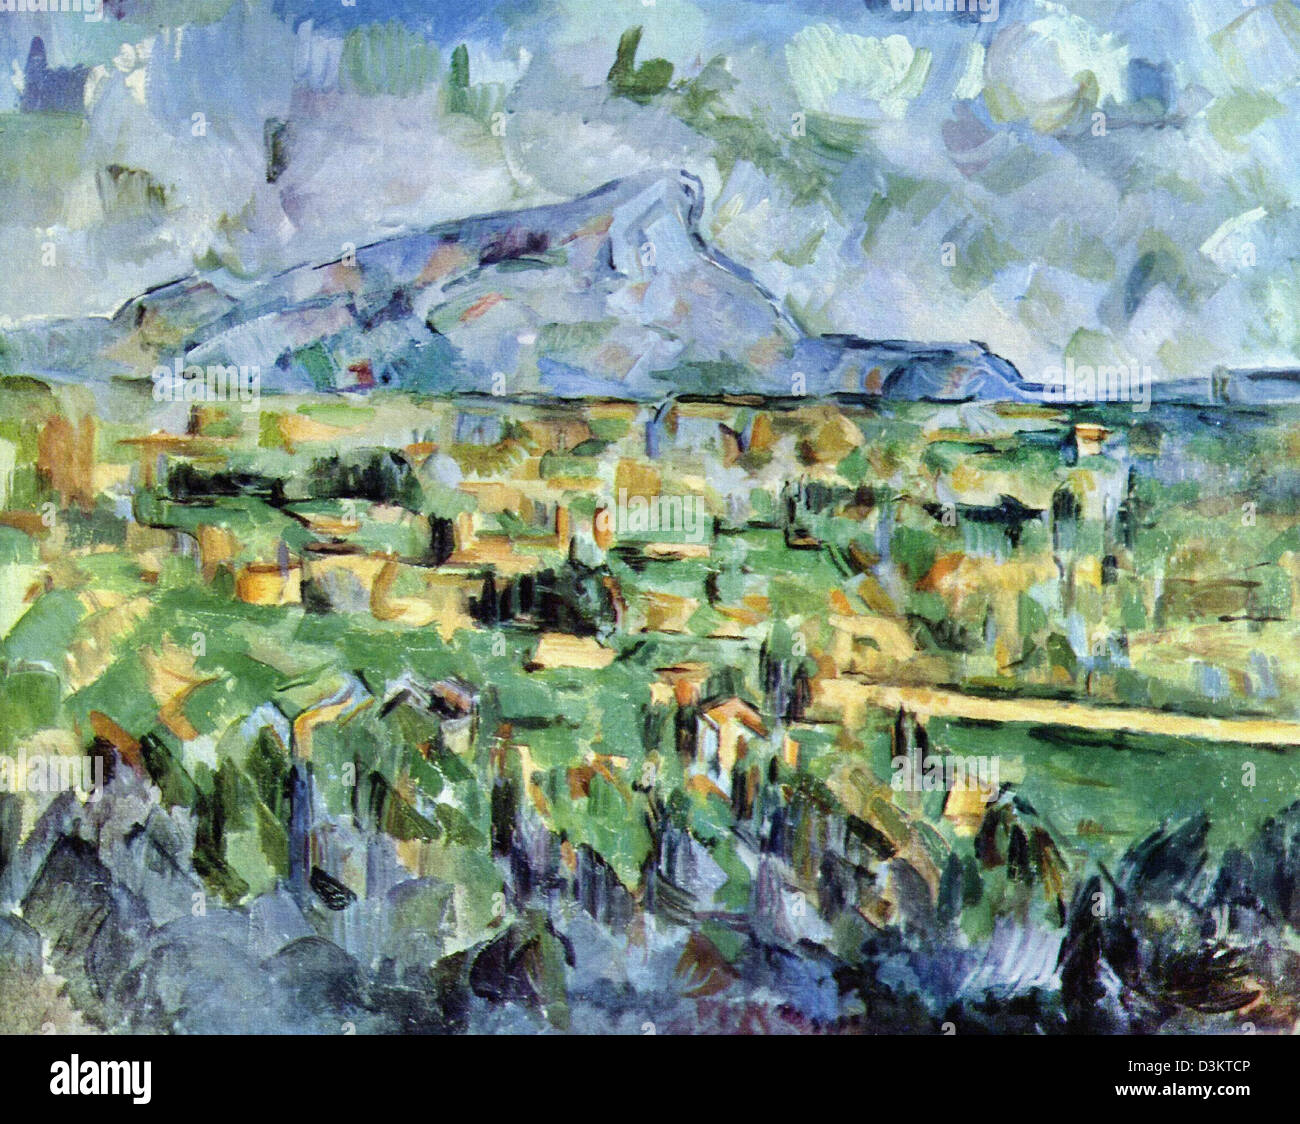 Paul Cezanne, Mount Sainte-Victoire 1904-1906 Oil on canvas. - Stock Image